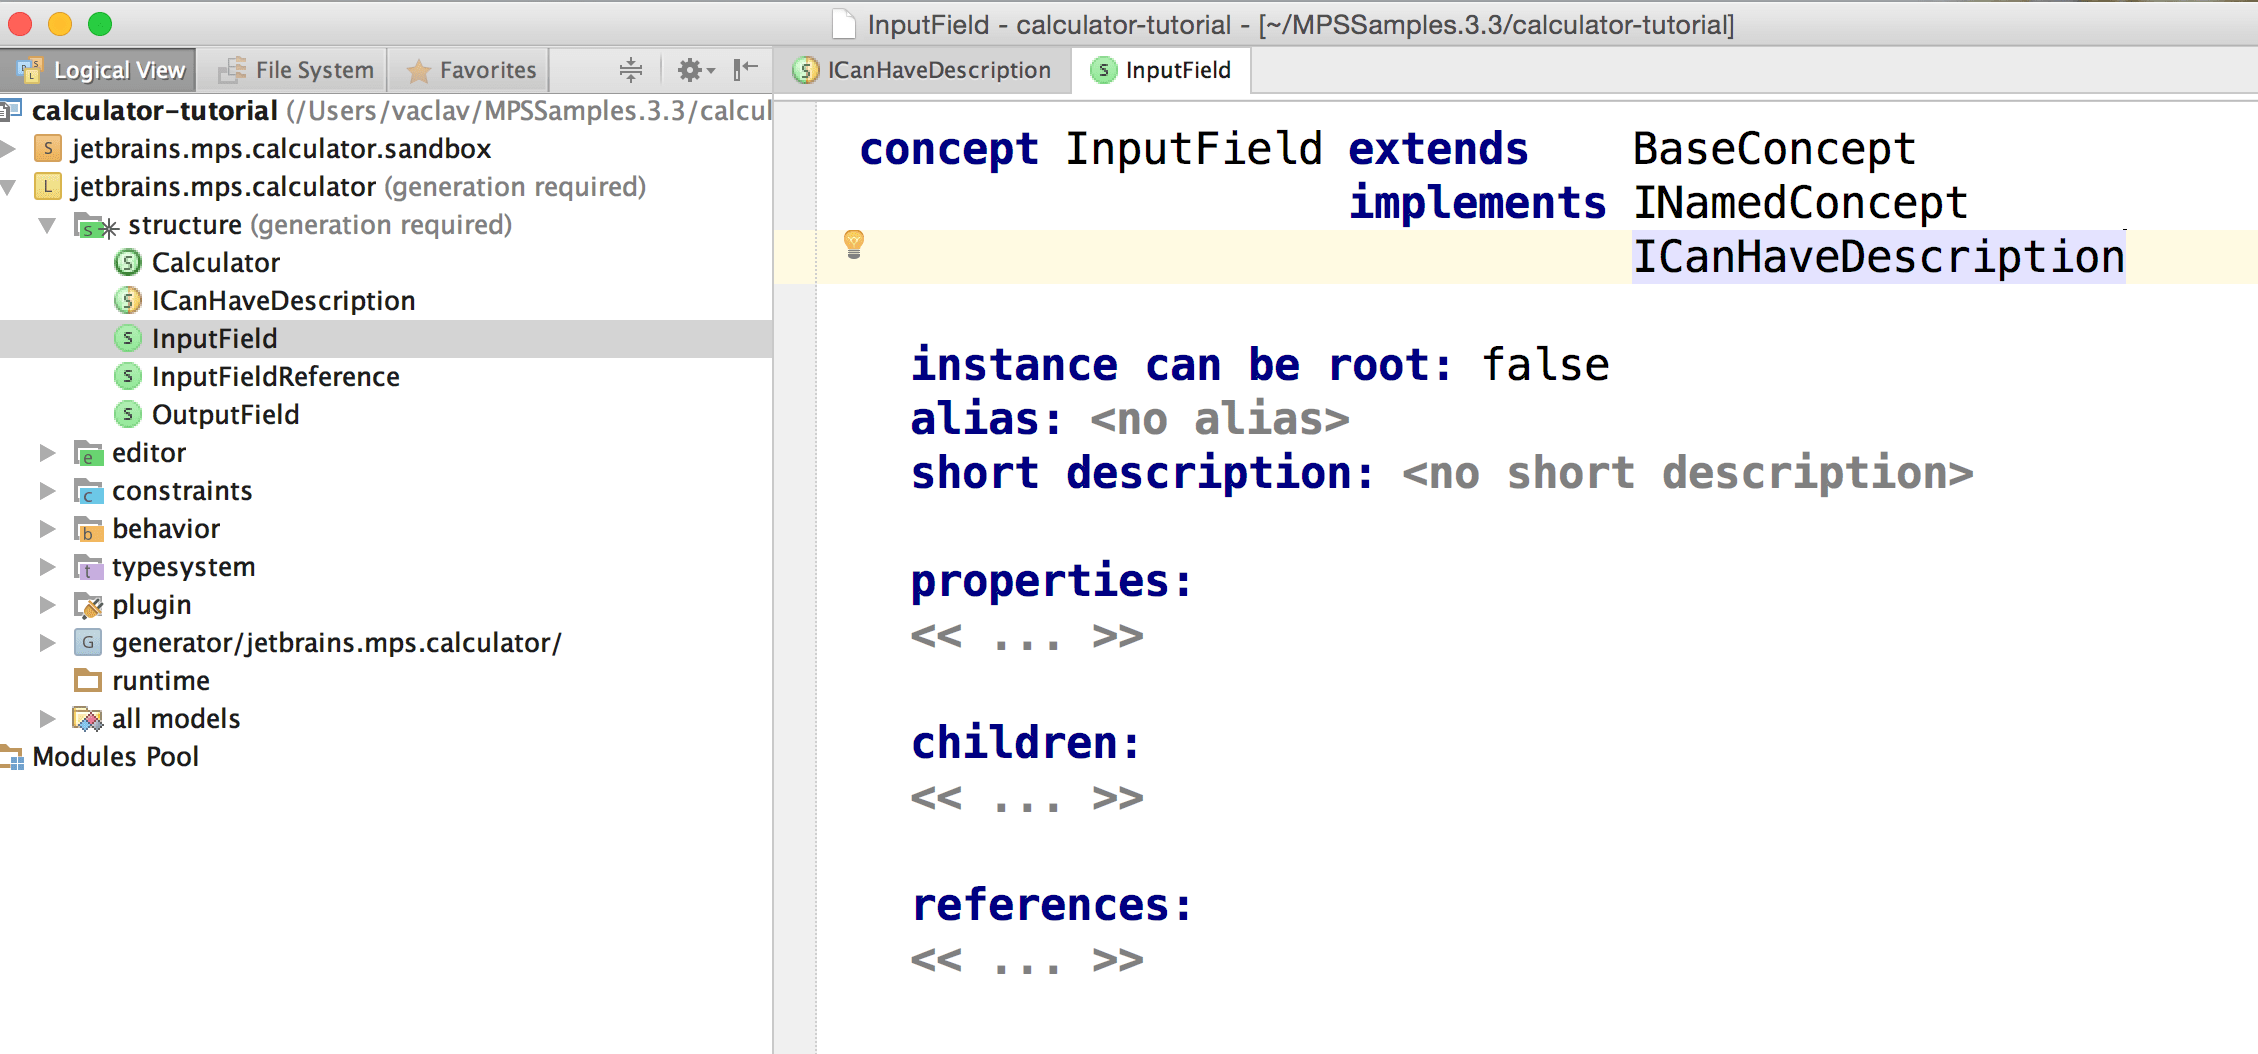 Implementing the ICanHaveDescription interface